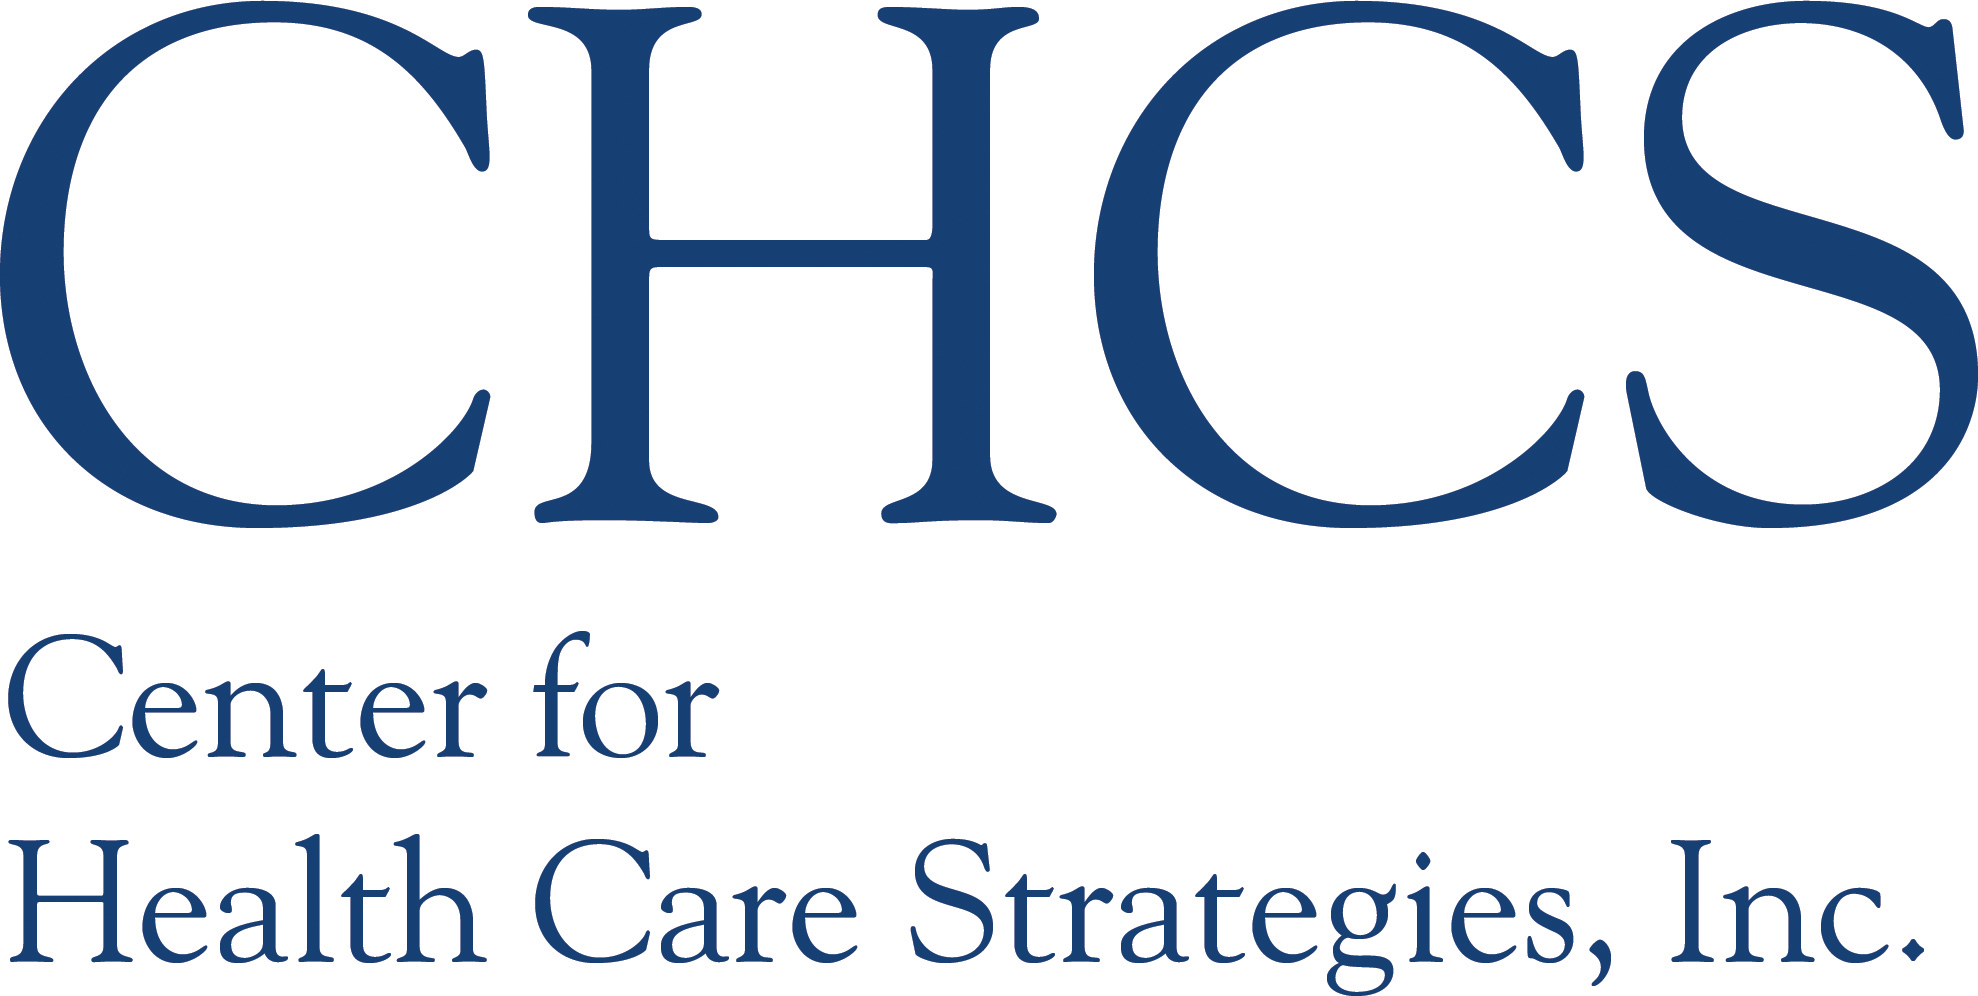 Center for Health Care Strategies, Inc : Early State Efforts